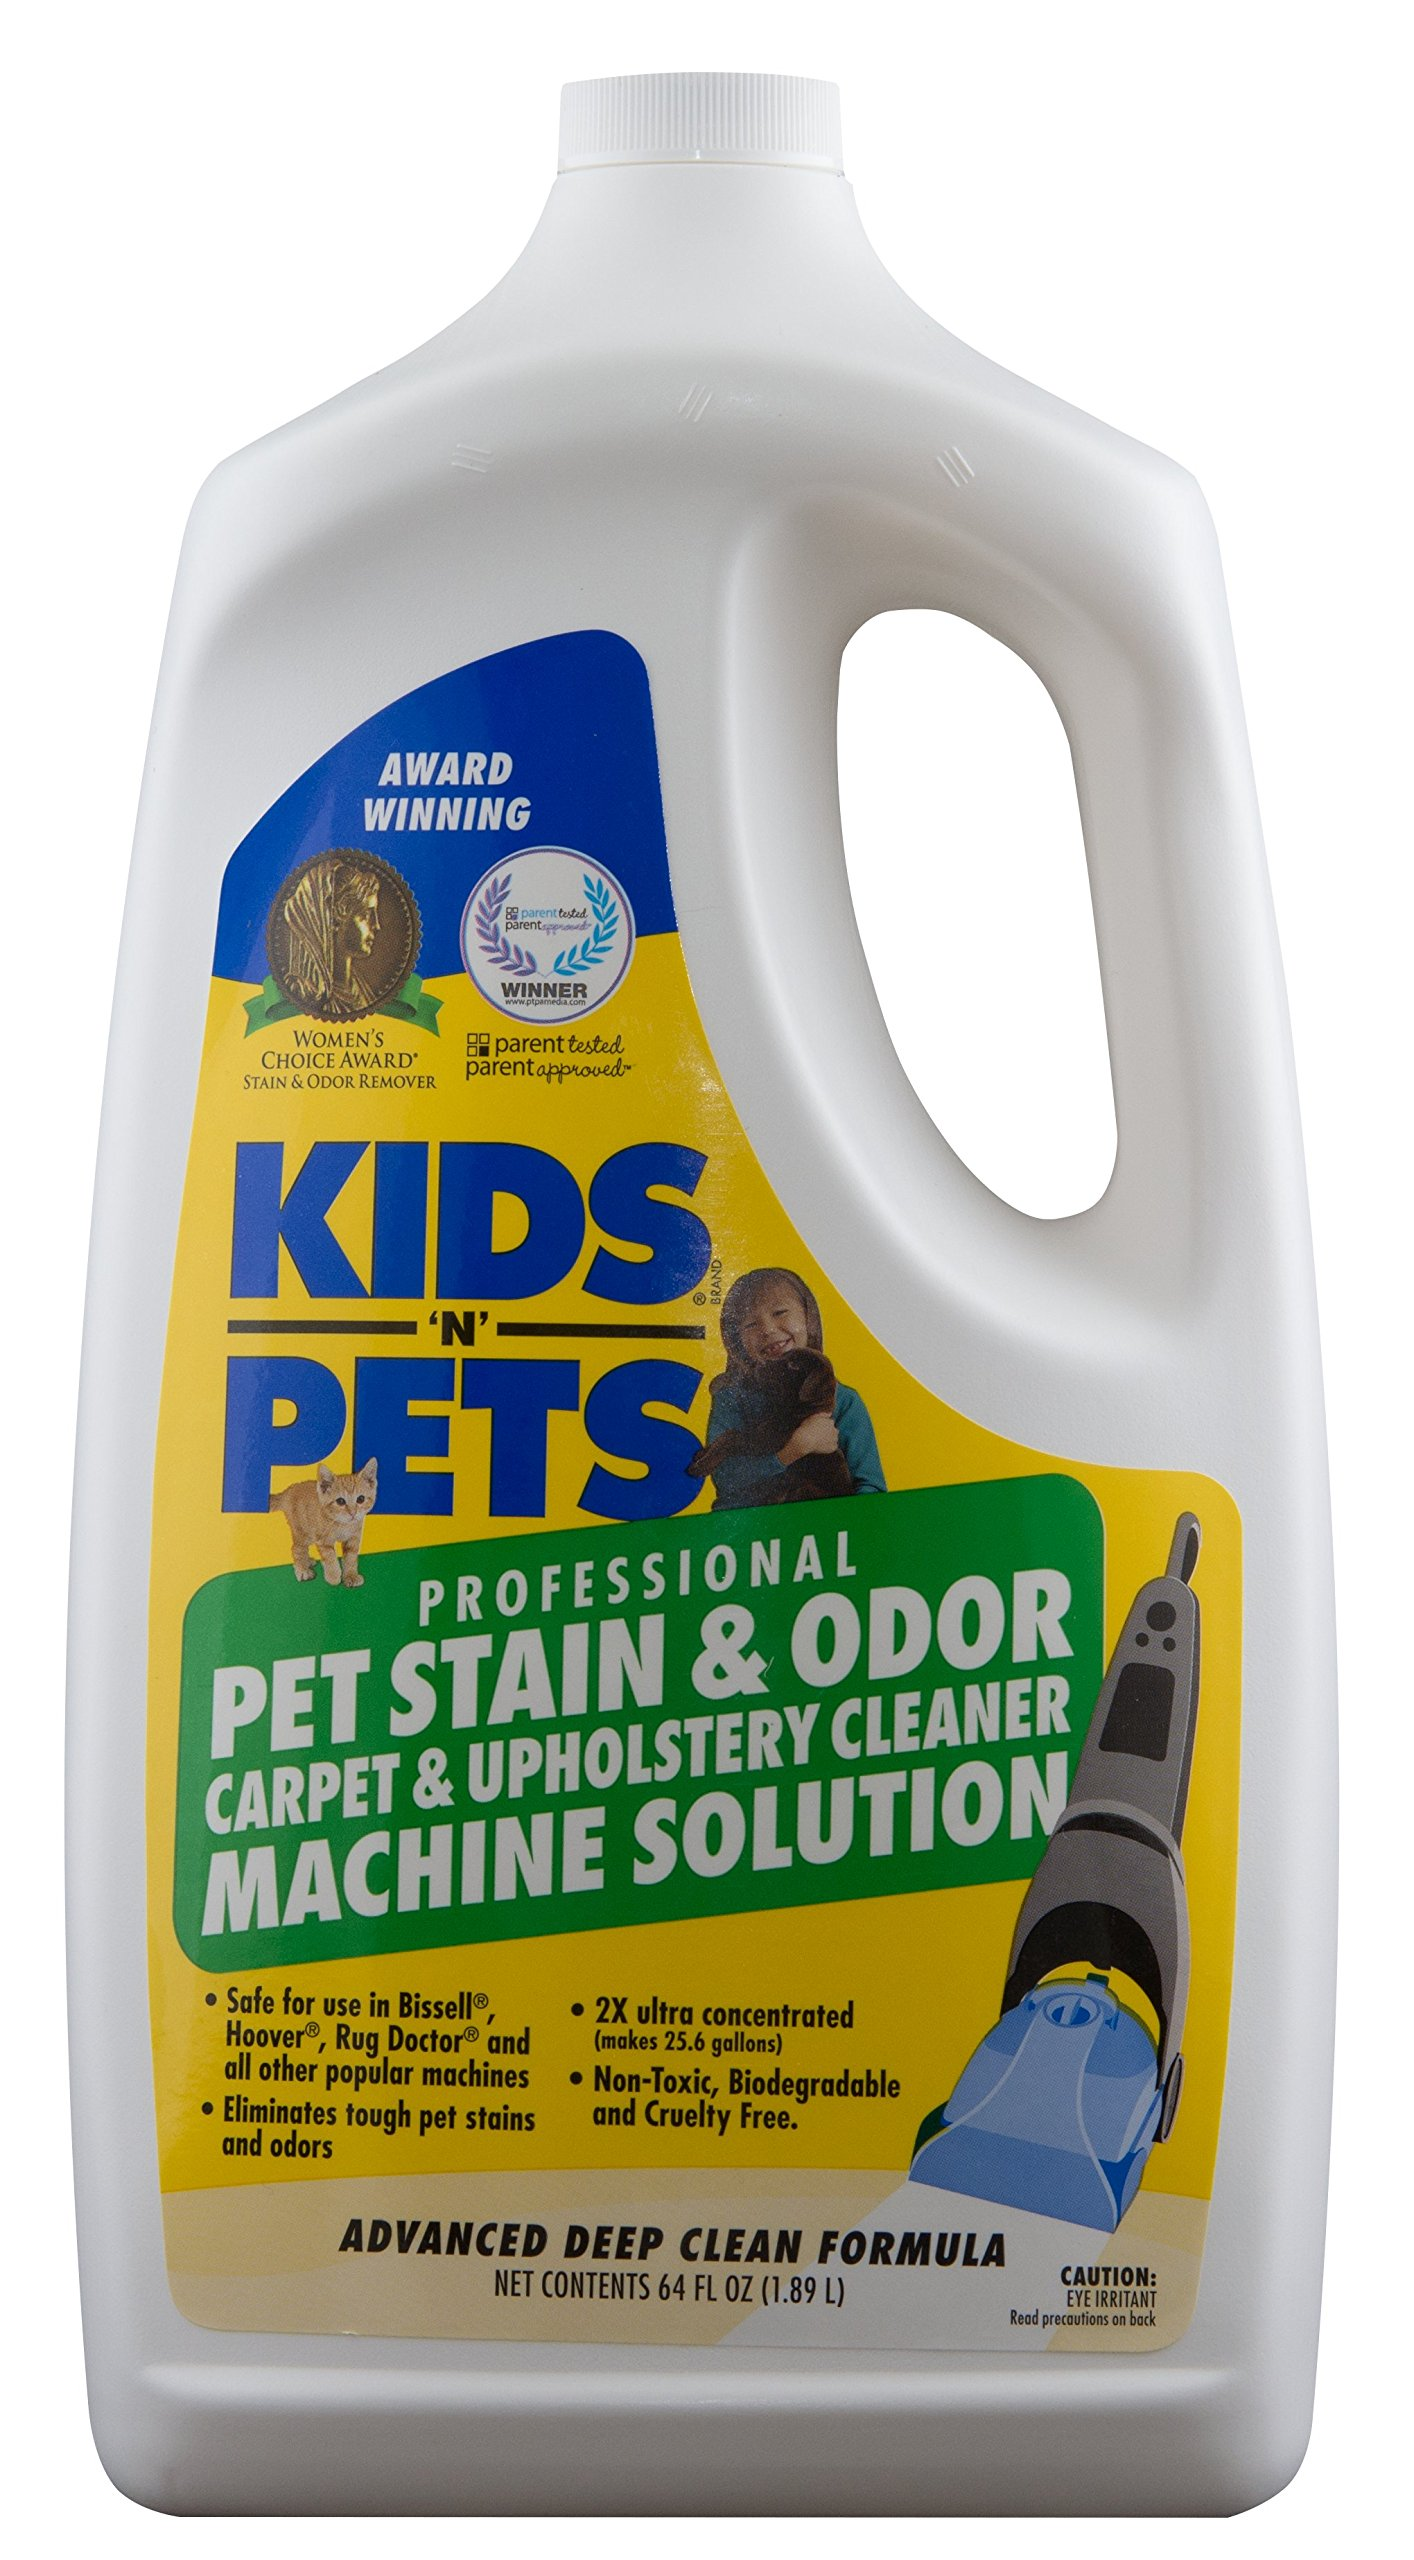 Kids 'N' Pets - Pet Stain & Odor - Carpet & Upholstery Cleaner Machine Solution – 64 oz | Professional Strength Formula Deeply Cleans Carpet & Upholstery | Non-Toxic & Child Safe